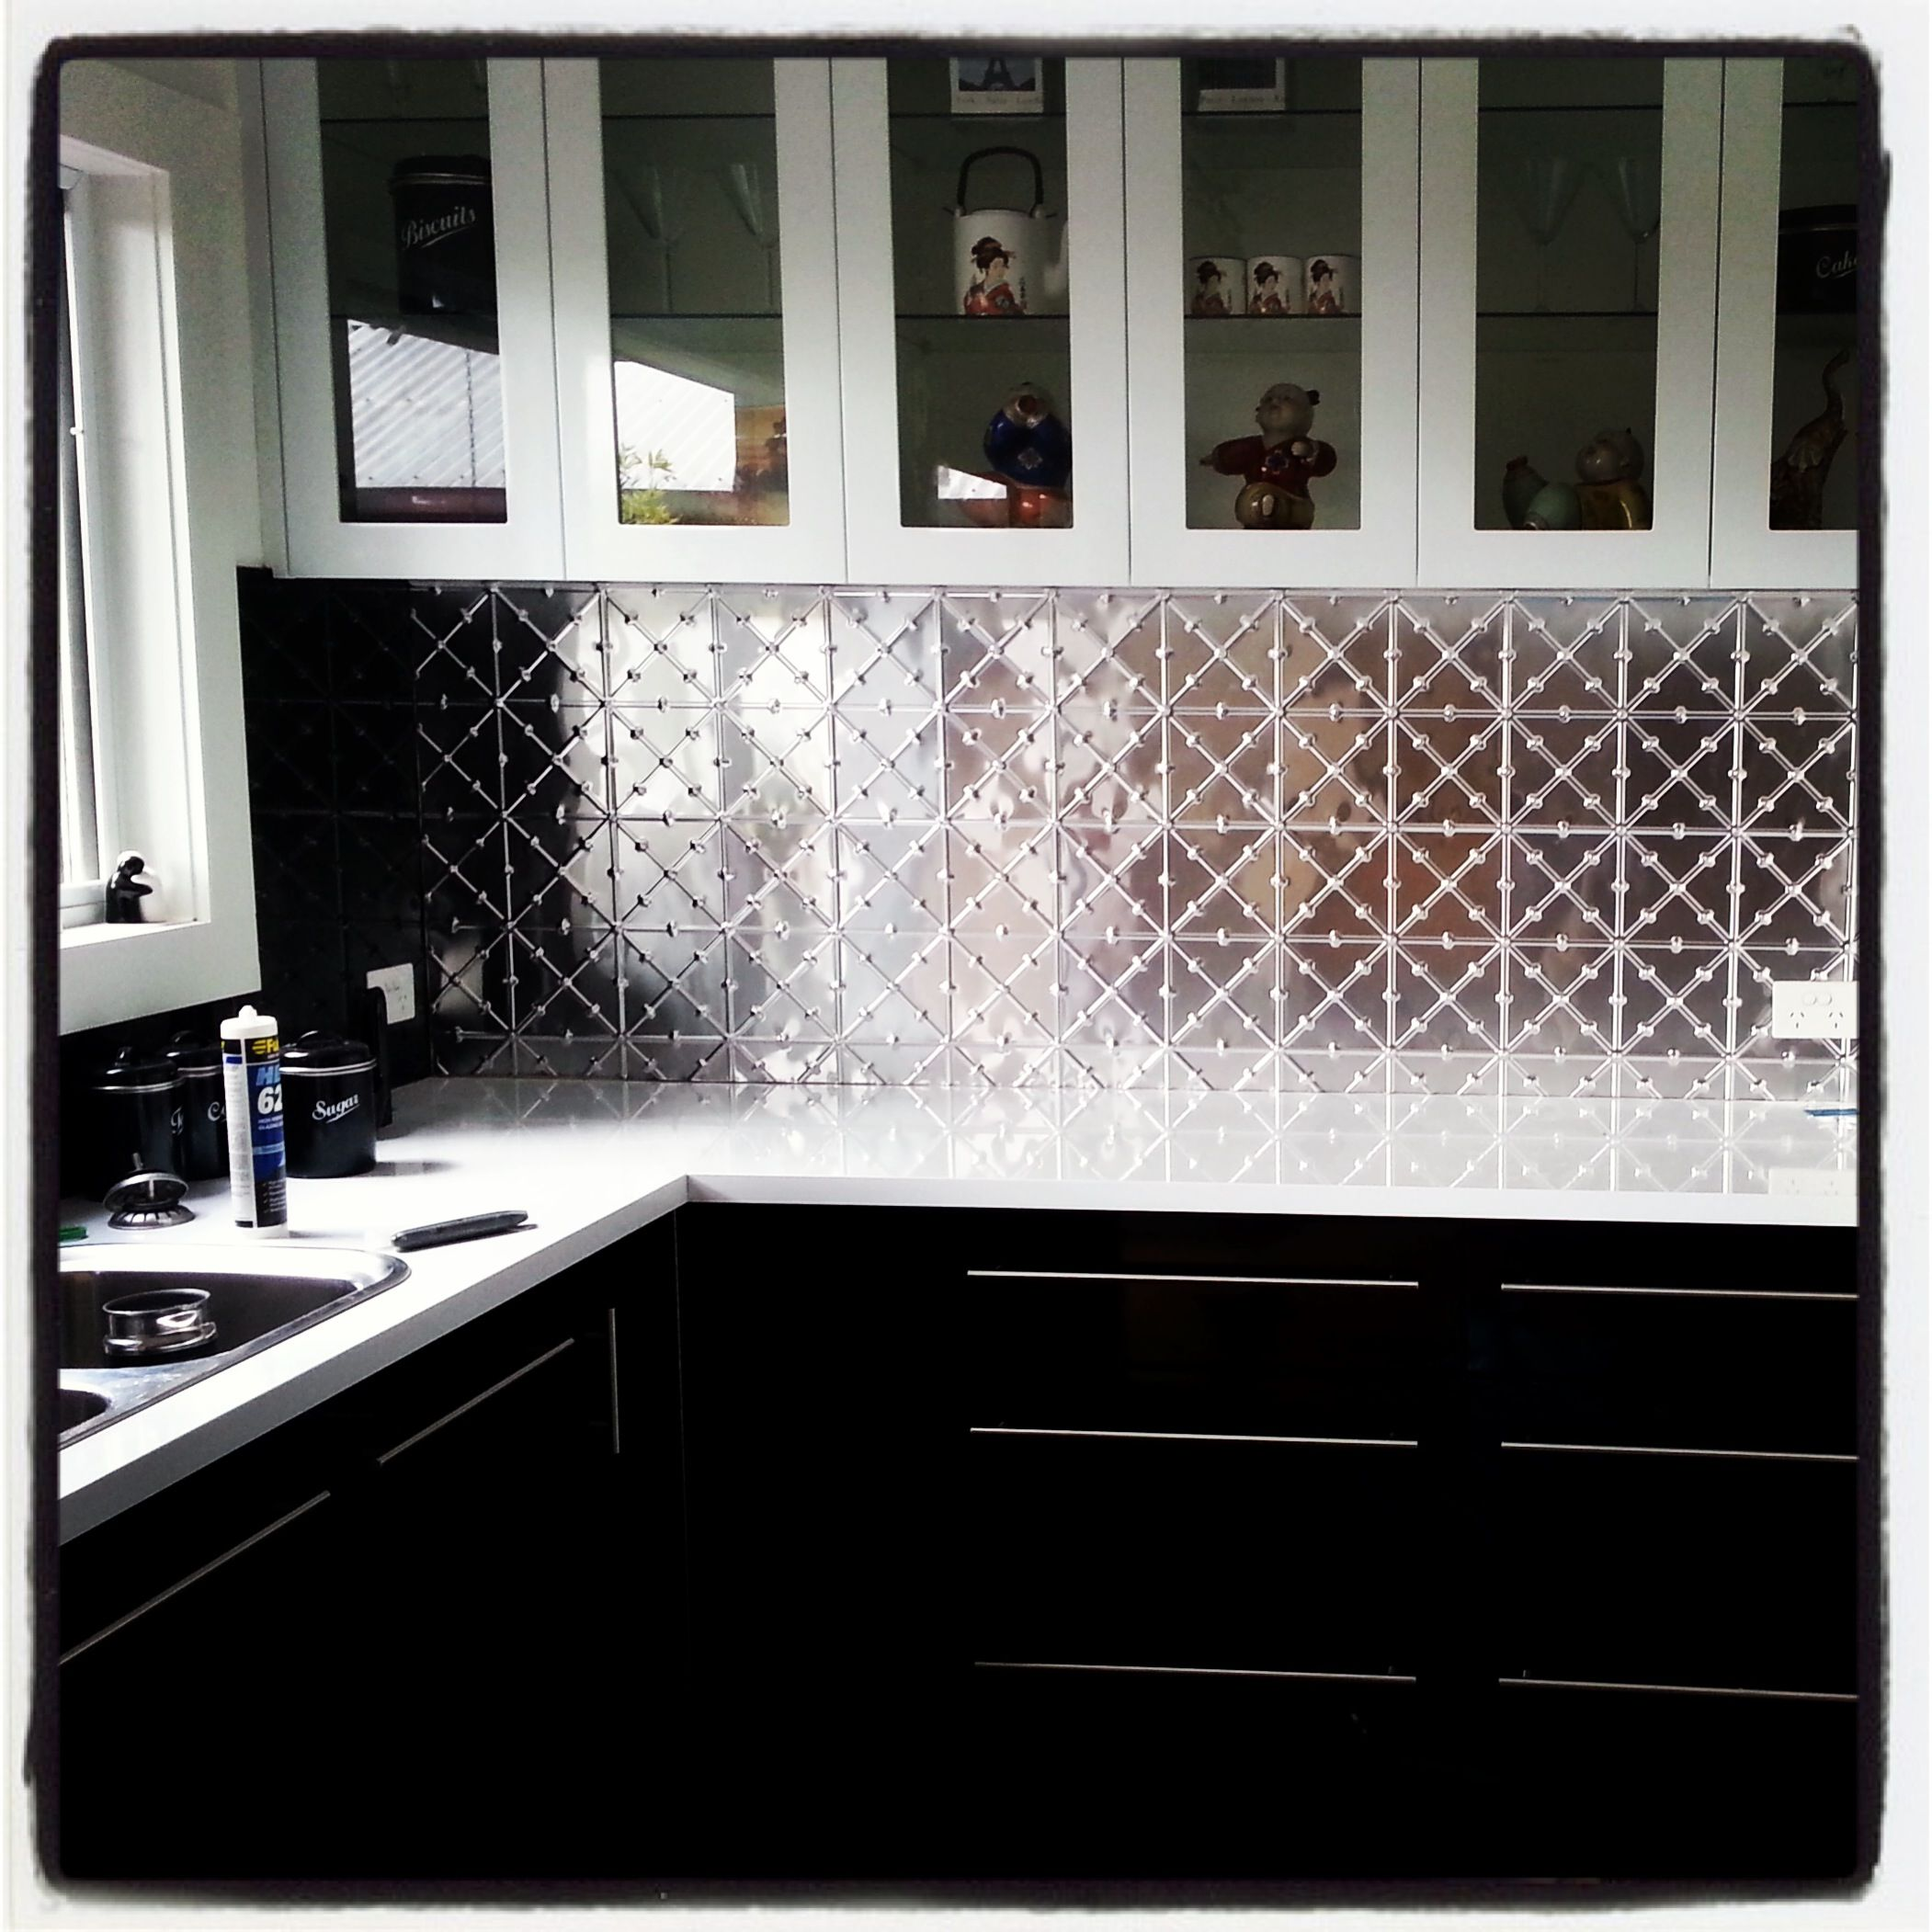 Industrial Rivet Pressed Metal splash back. Get the look with products from  Schots Home Emporium